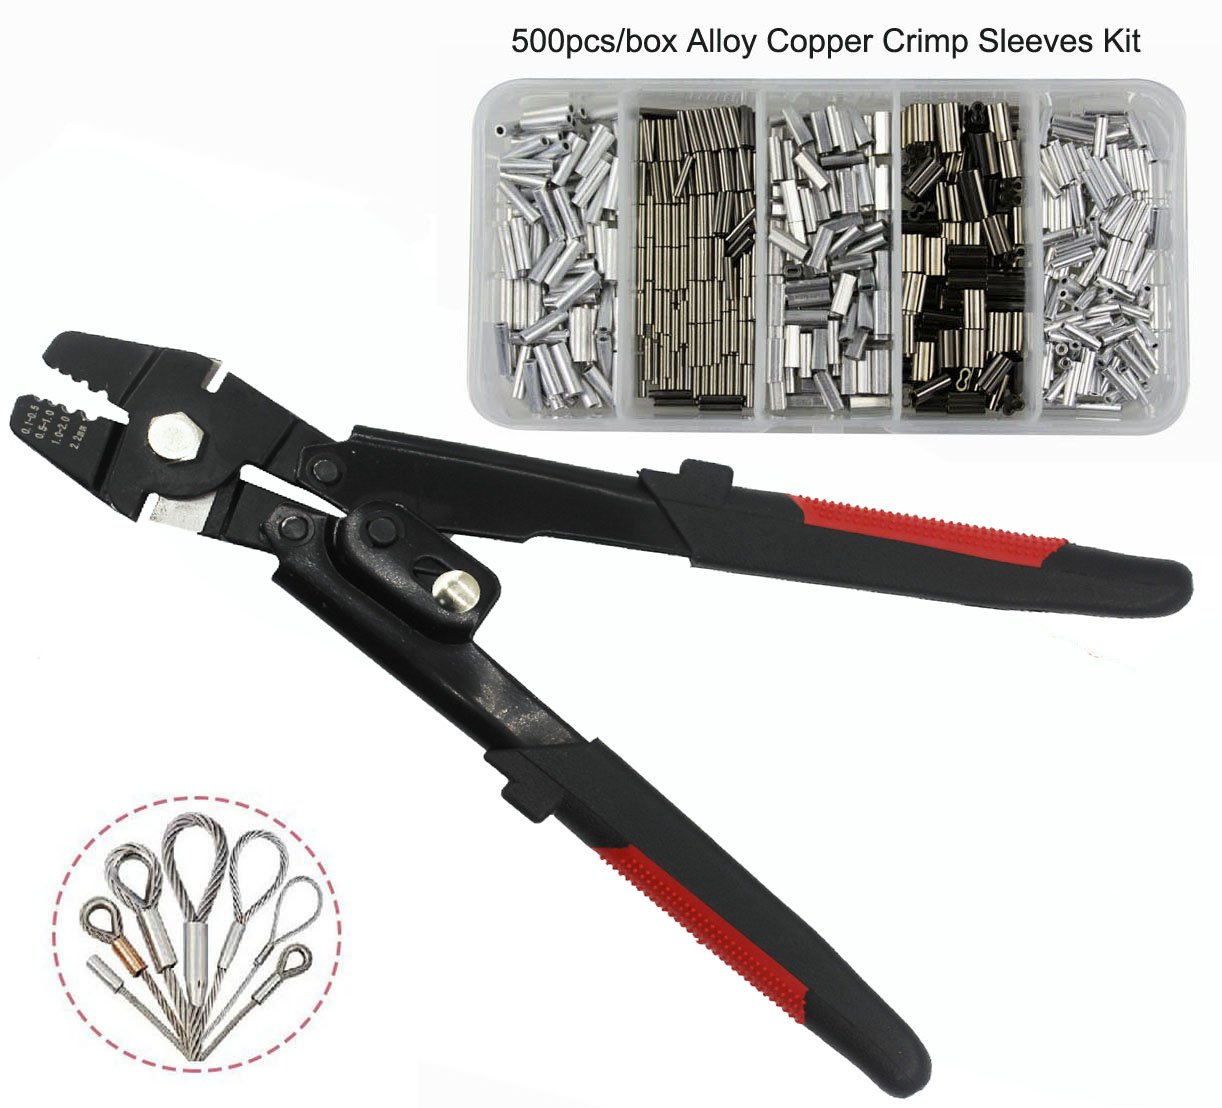 JSHANMEI Wire Rope Swager Crimpers Fishing Crimping Tool for Copper Fishing Line Crimp Sleeves Swivels Snaps Up To 2.2mm Premium Rigging Kit (High-carbon Steel Crimper Kit)